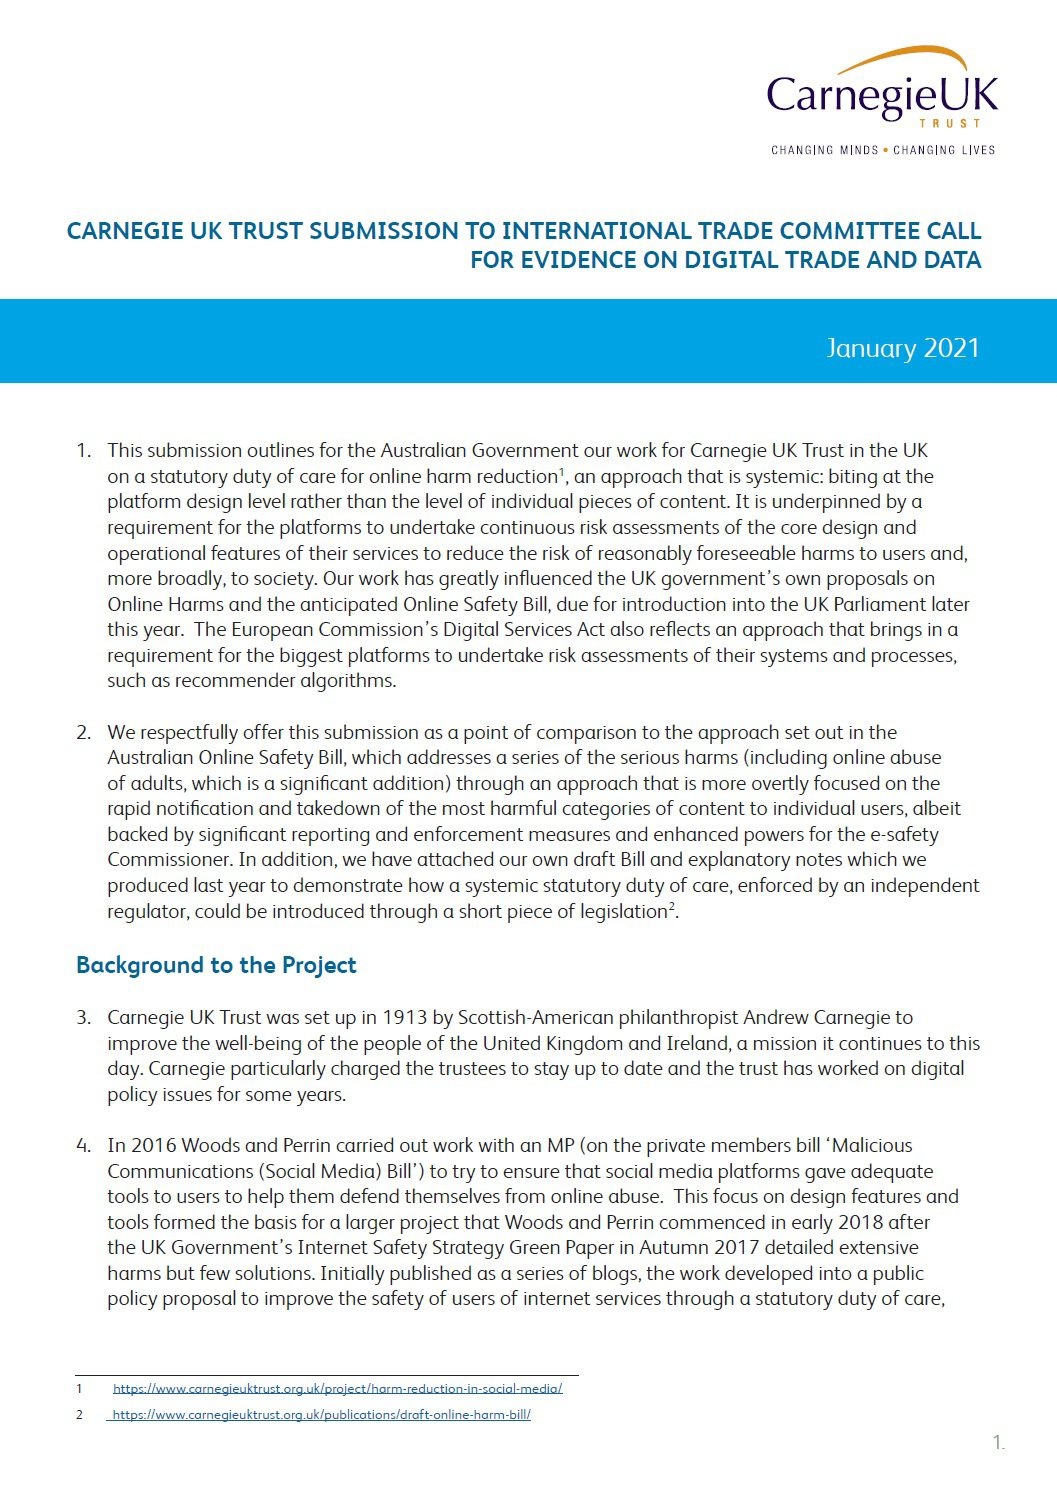 Submission to International Trade Committee call for evidence on digital trade and data